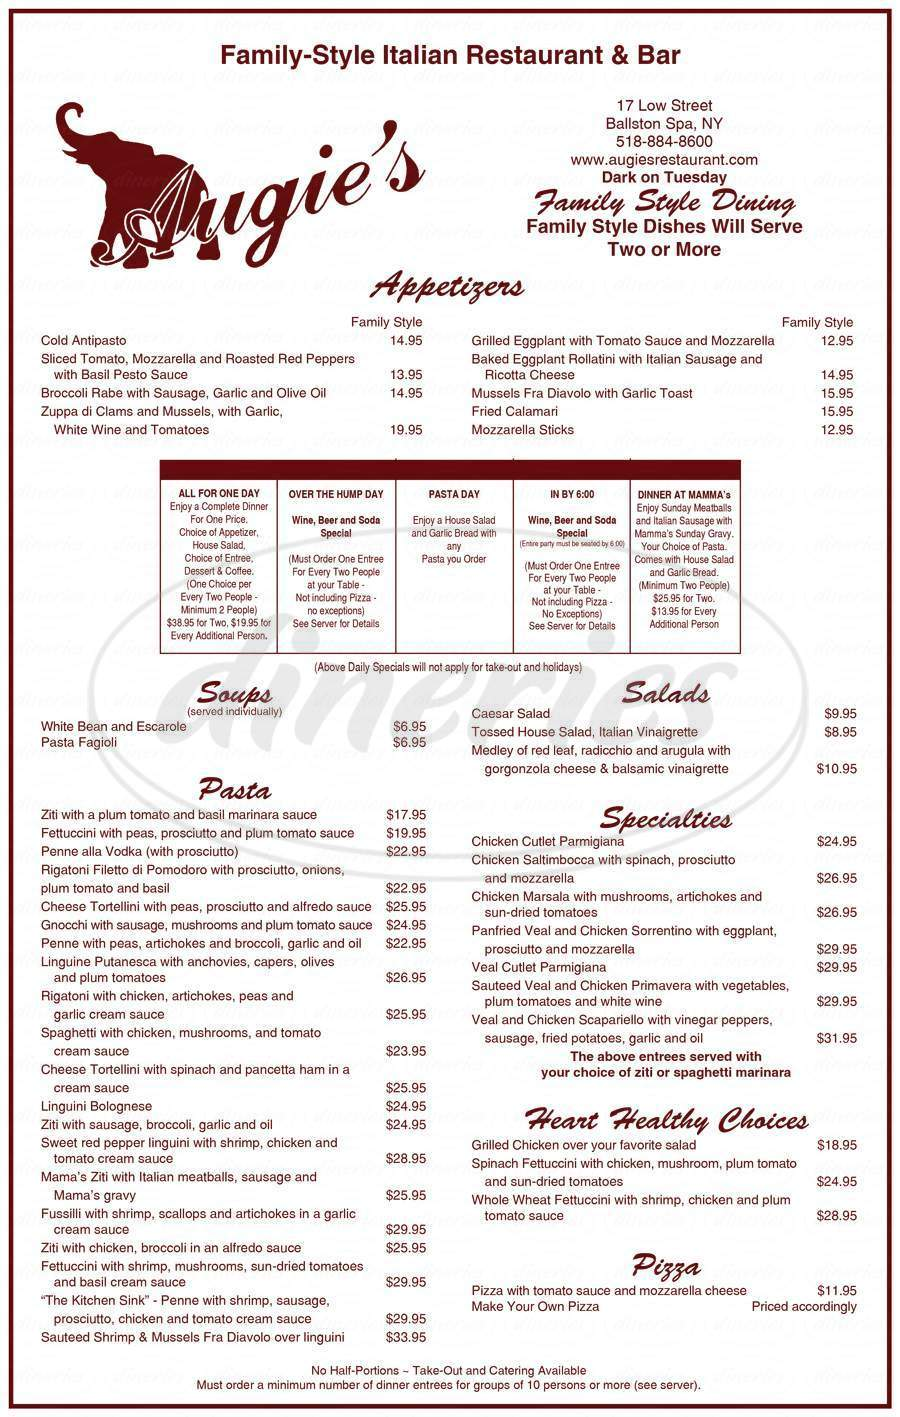 menu for Augie's Family Style Italian Restaurant